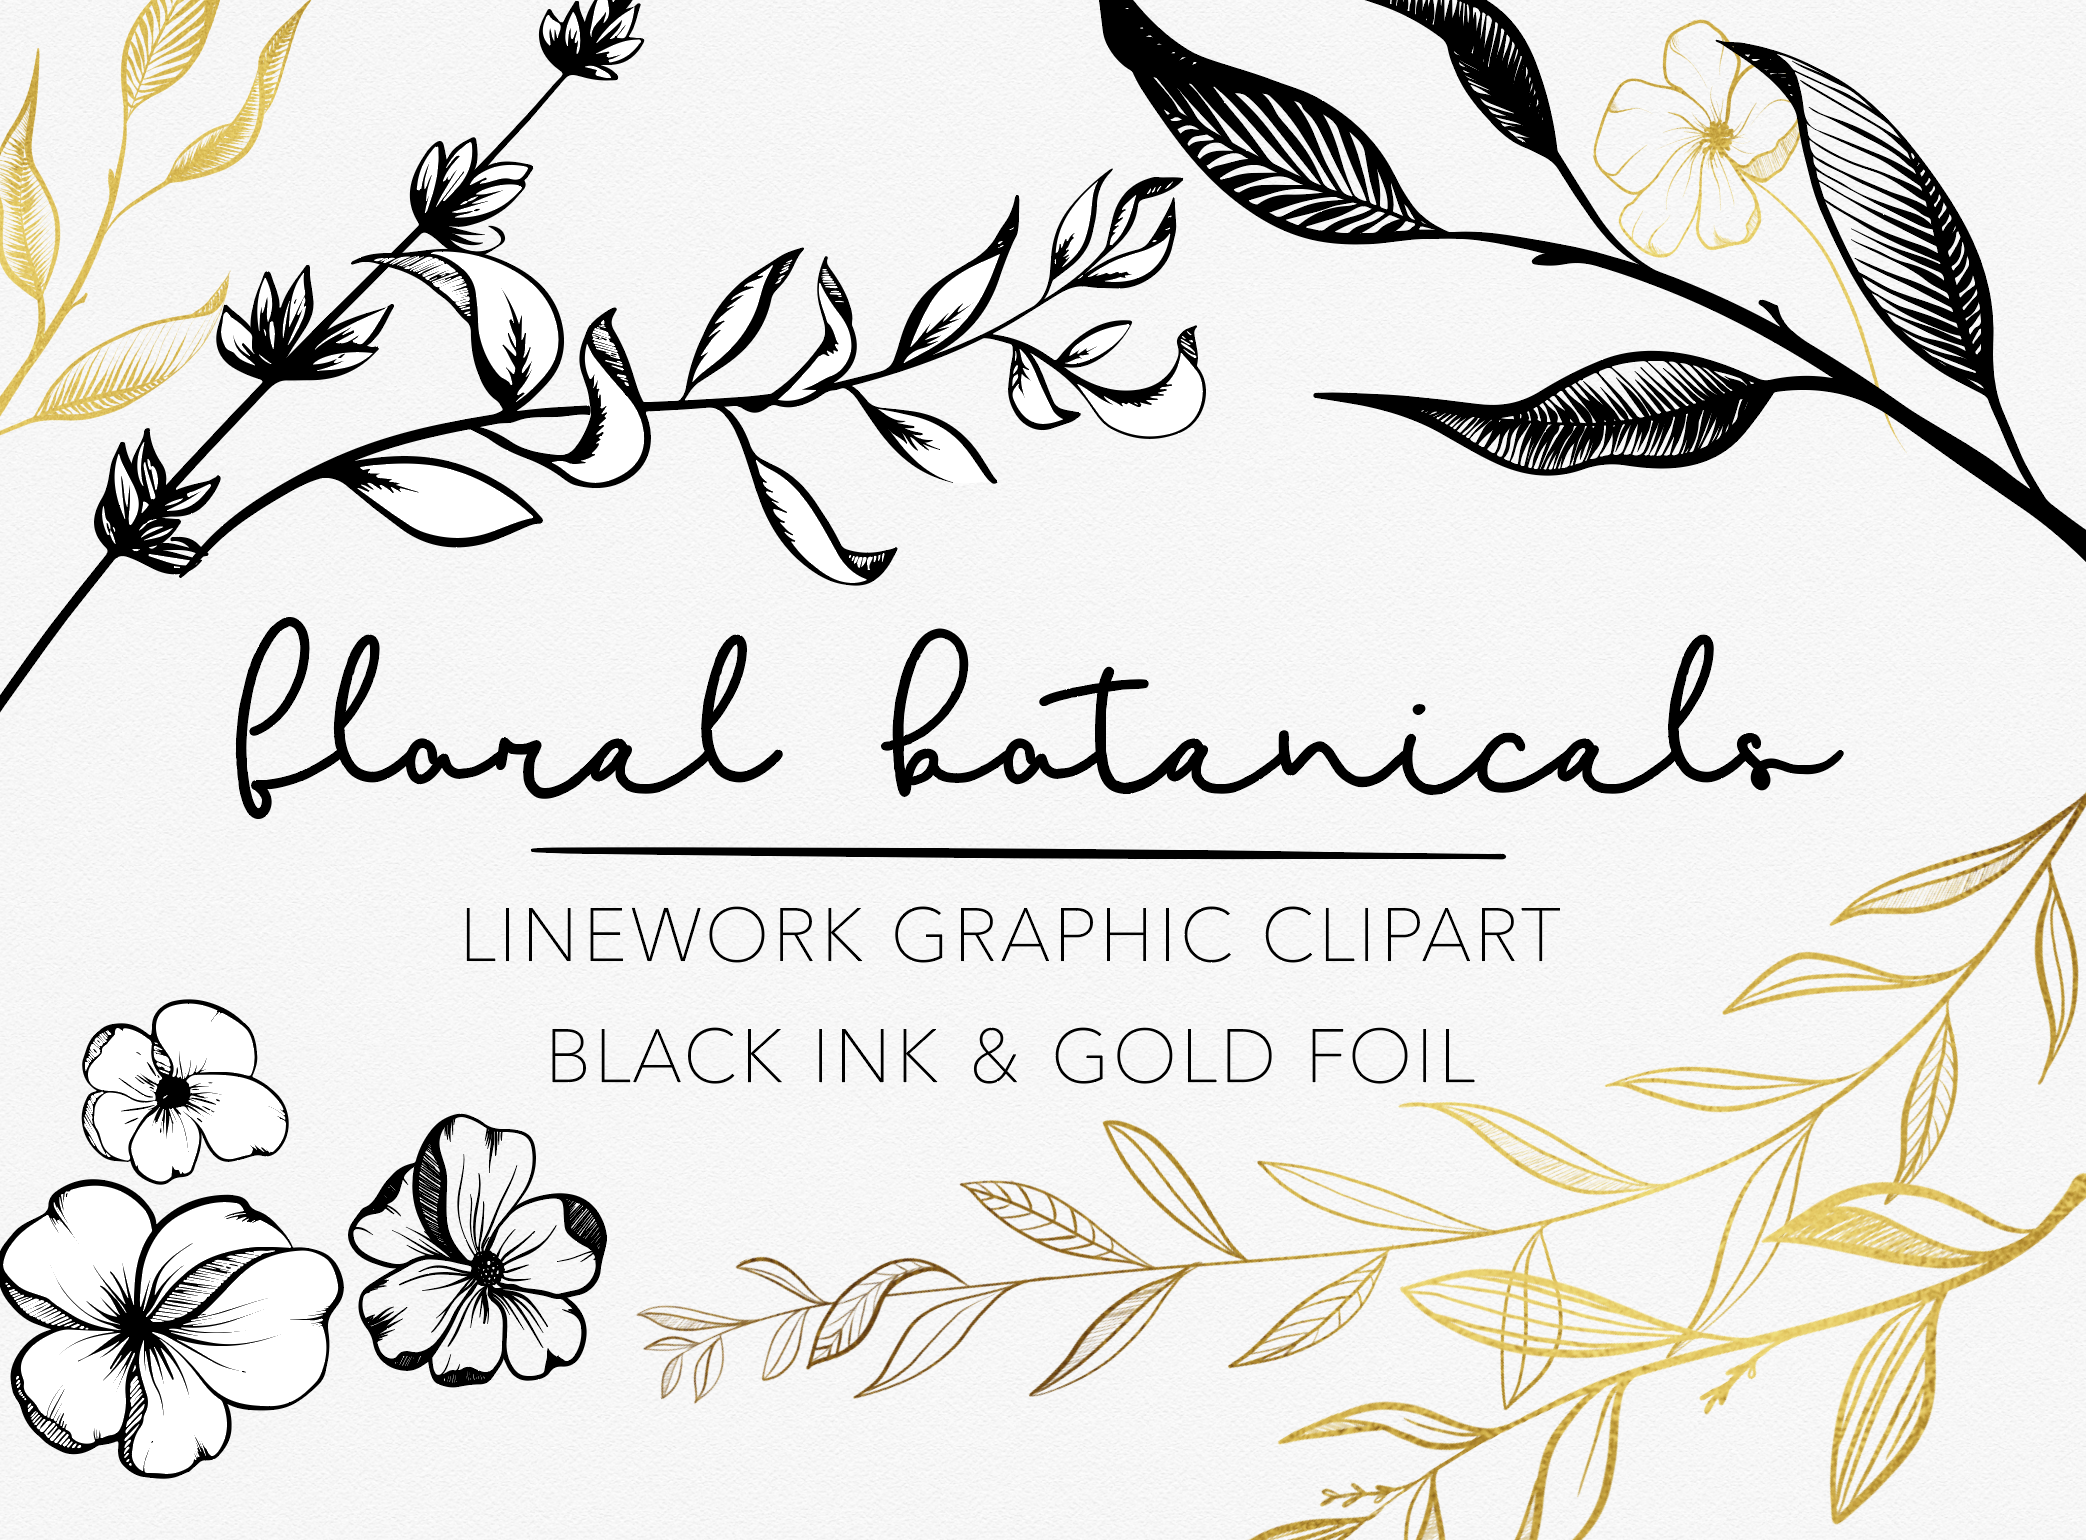 Flower ink clipart vector royalty free download Black Ink and Gold Foil Botanical Floral Linework Graphics - Vsual vector royalty free download